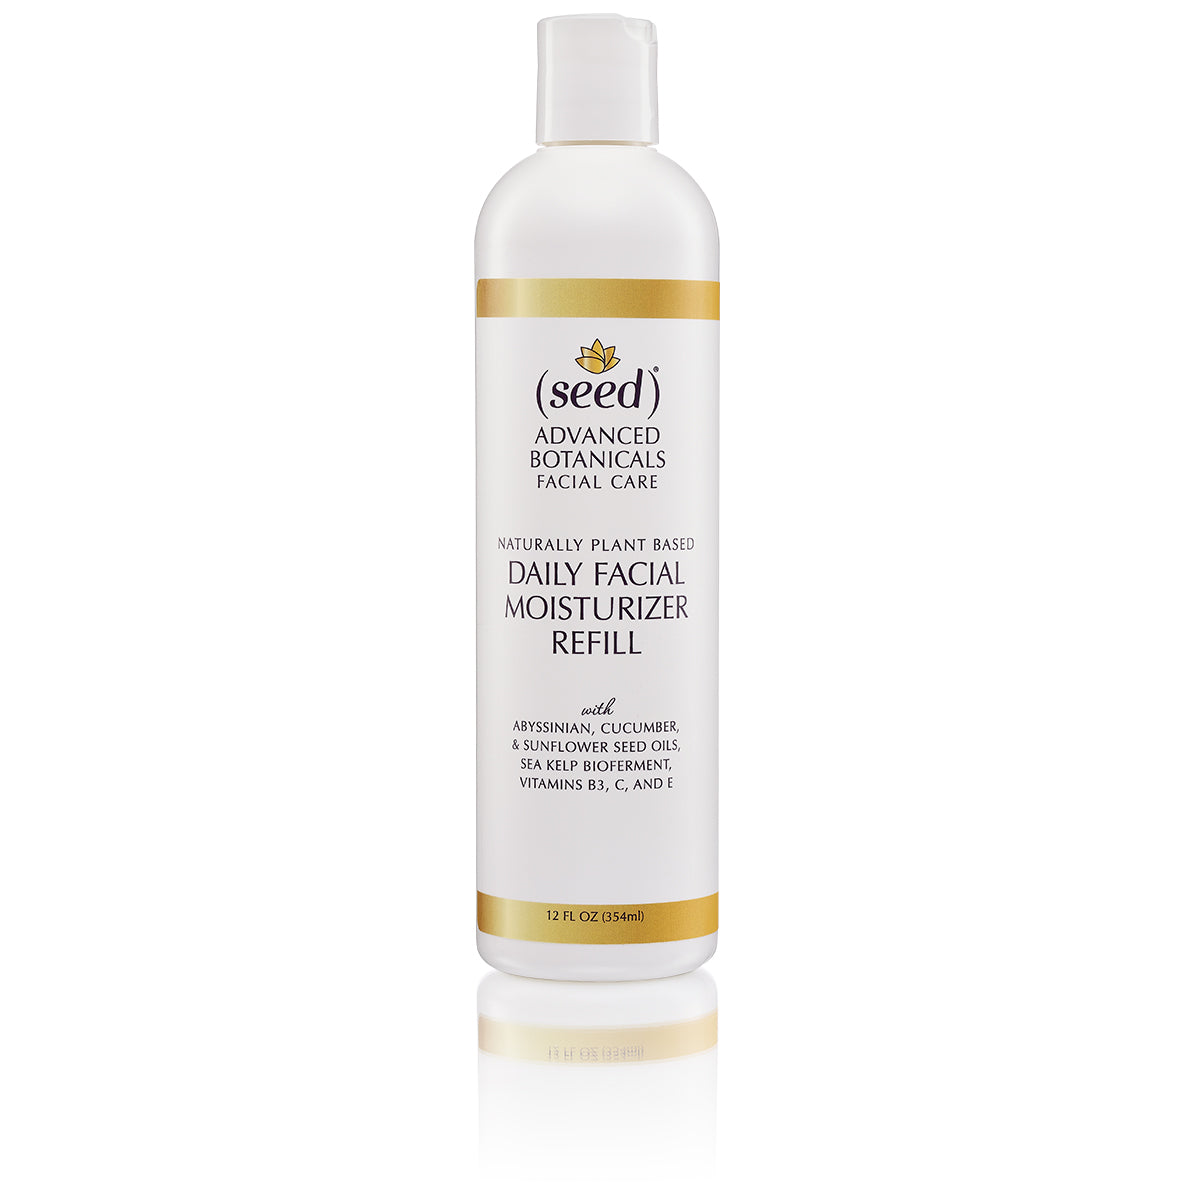 Seed Advanced Botanicals Facial Moisturizer Refills